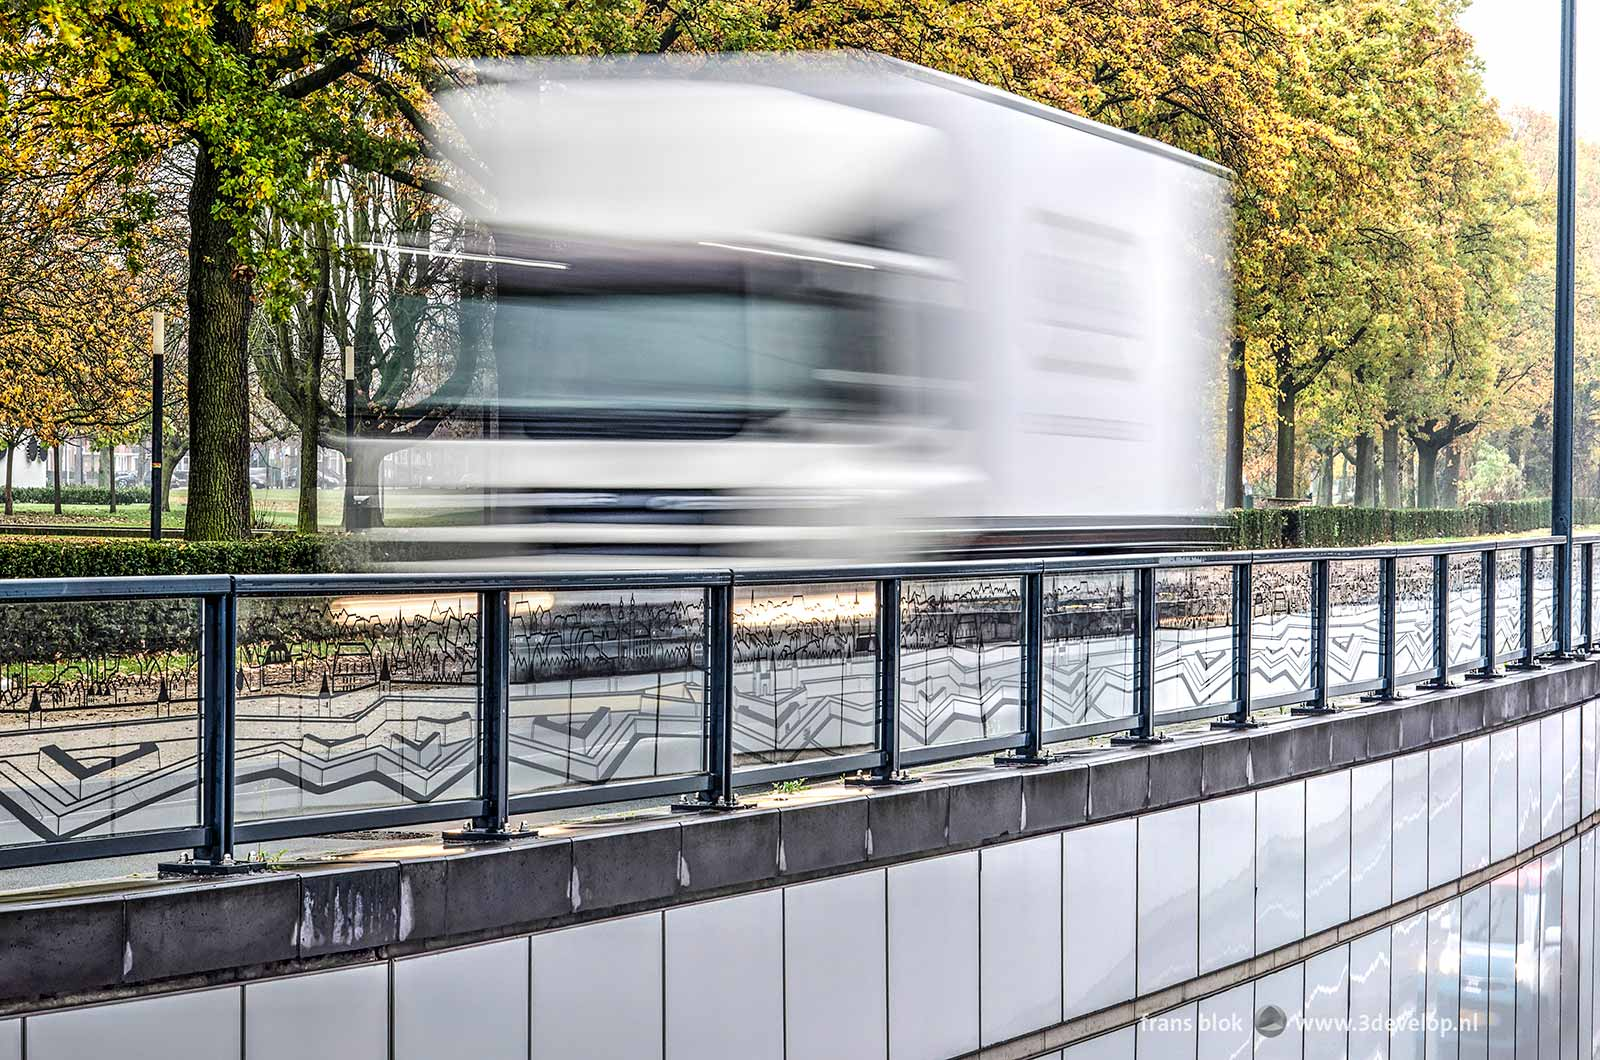 White van passing the glas panels with prints of the ramparts in the balustrade of the tunnel under Koninginneplein in Venlo, The Netherlands